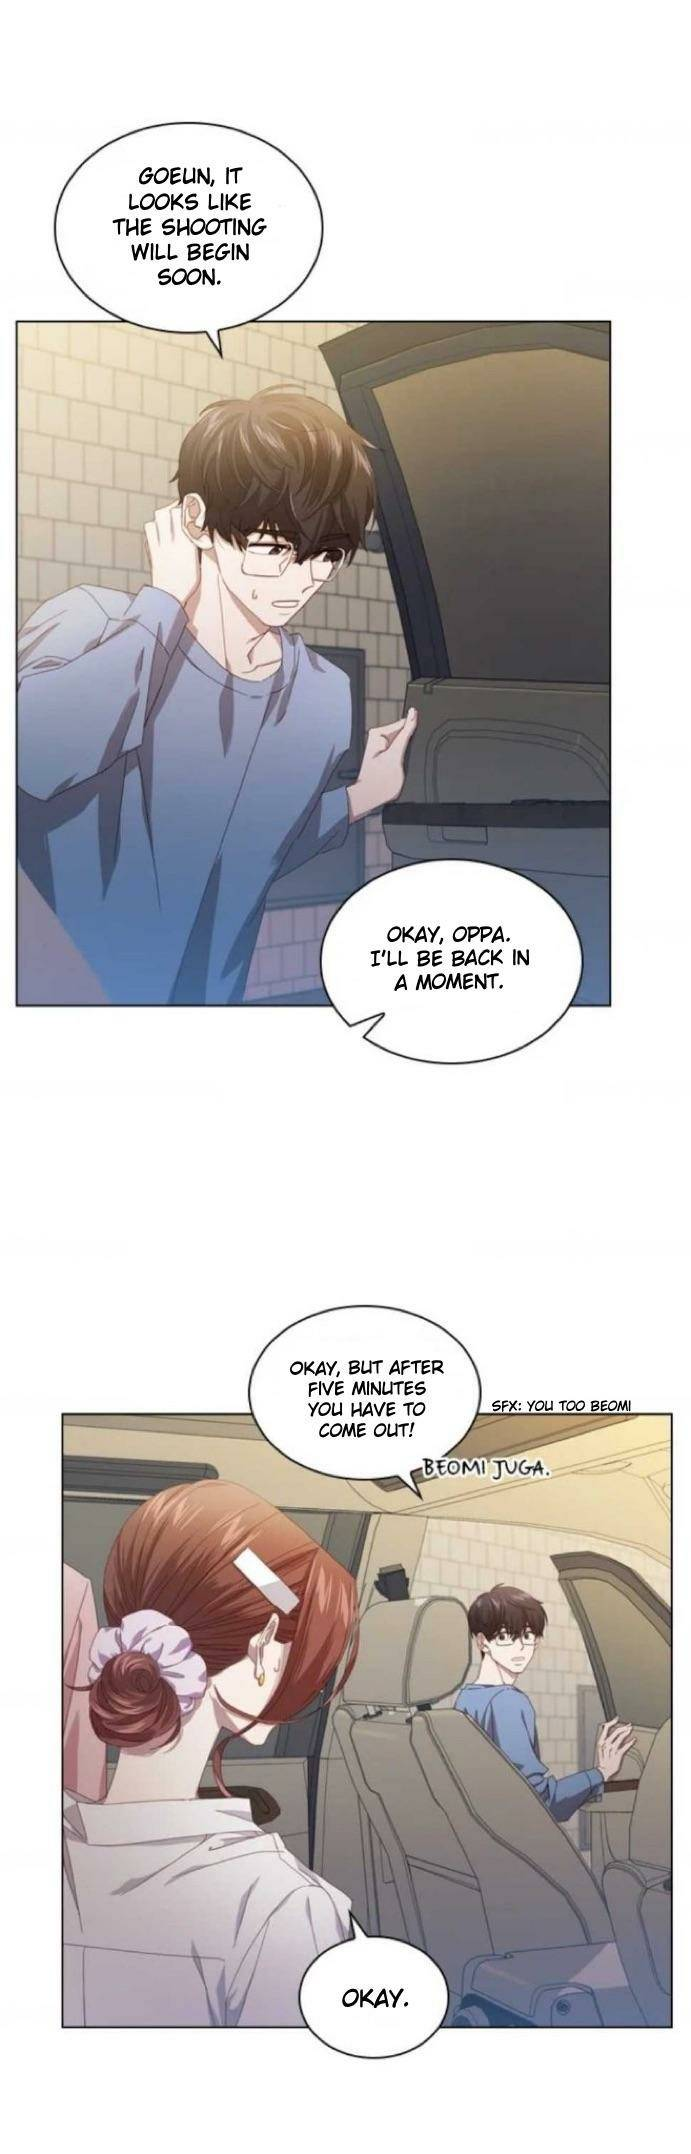 A Beastly Scandal - chapter 31 - #2